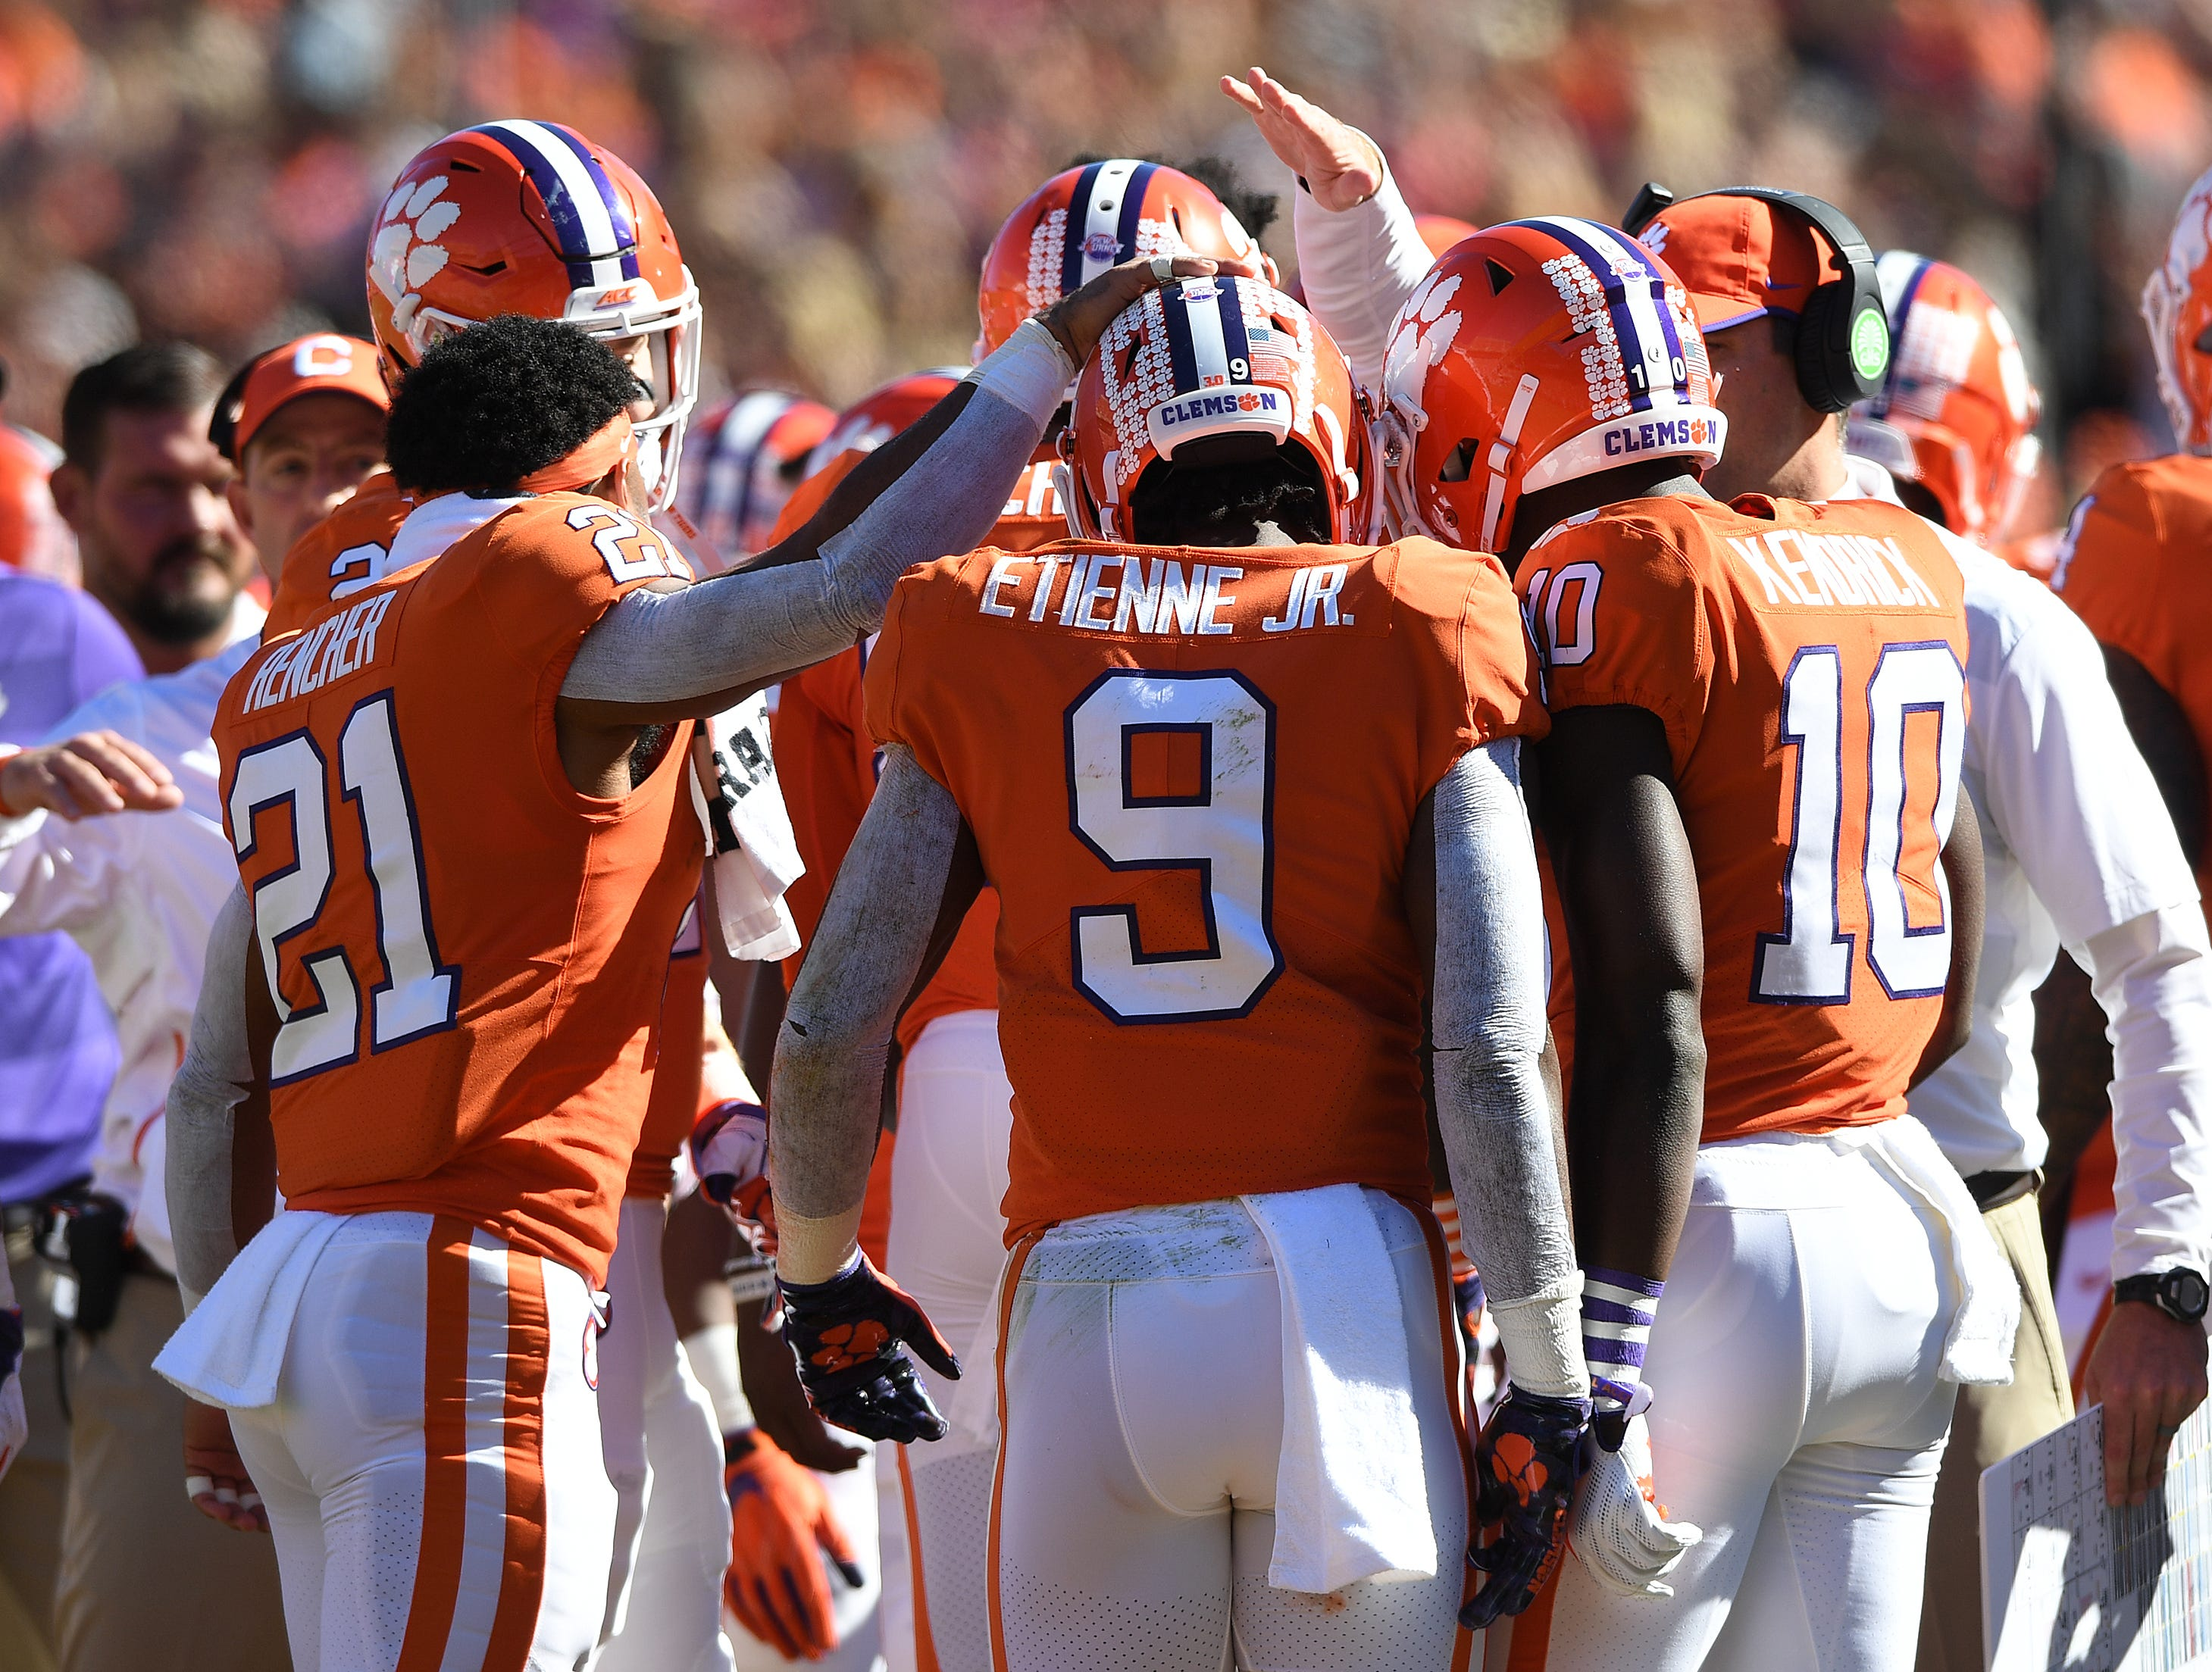 Clemson running back Travis Etienne (9) is congratulated by teammates after scoring against Louisville during the 1st quarter Saturday, November 3, 2018 at Clemson's Memorial Stadium.